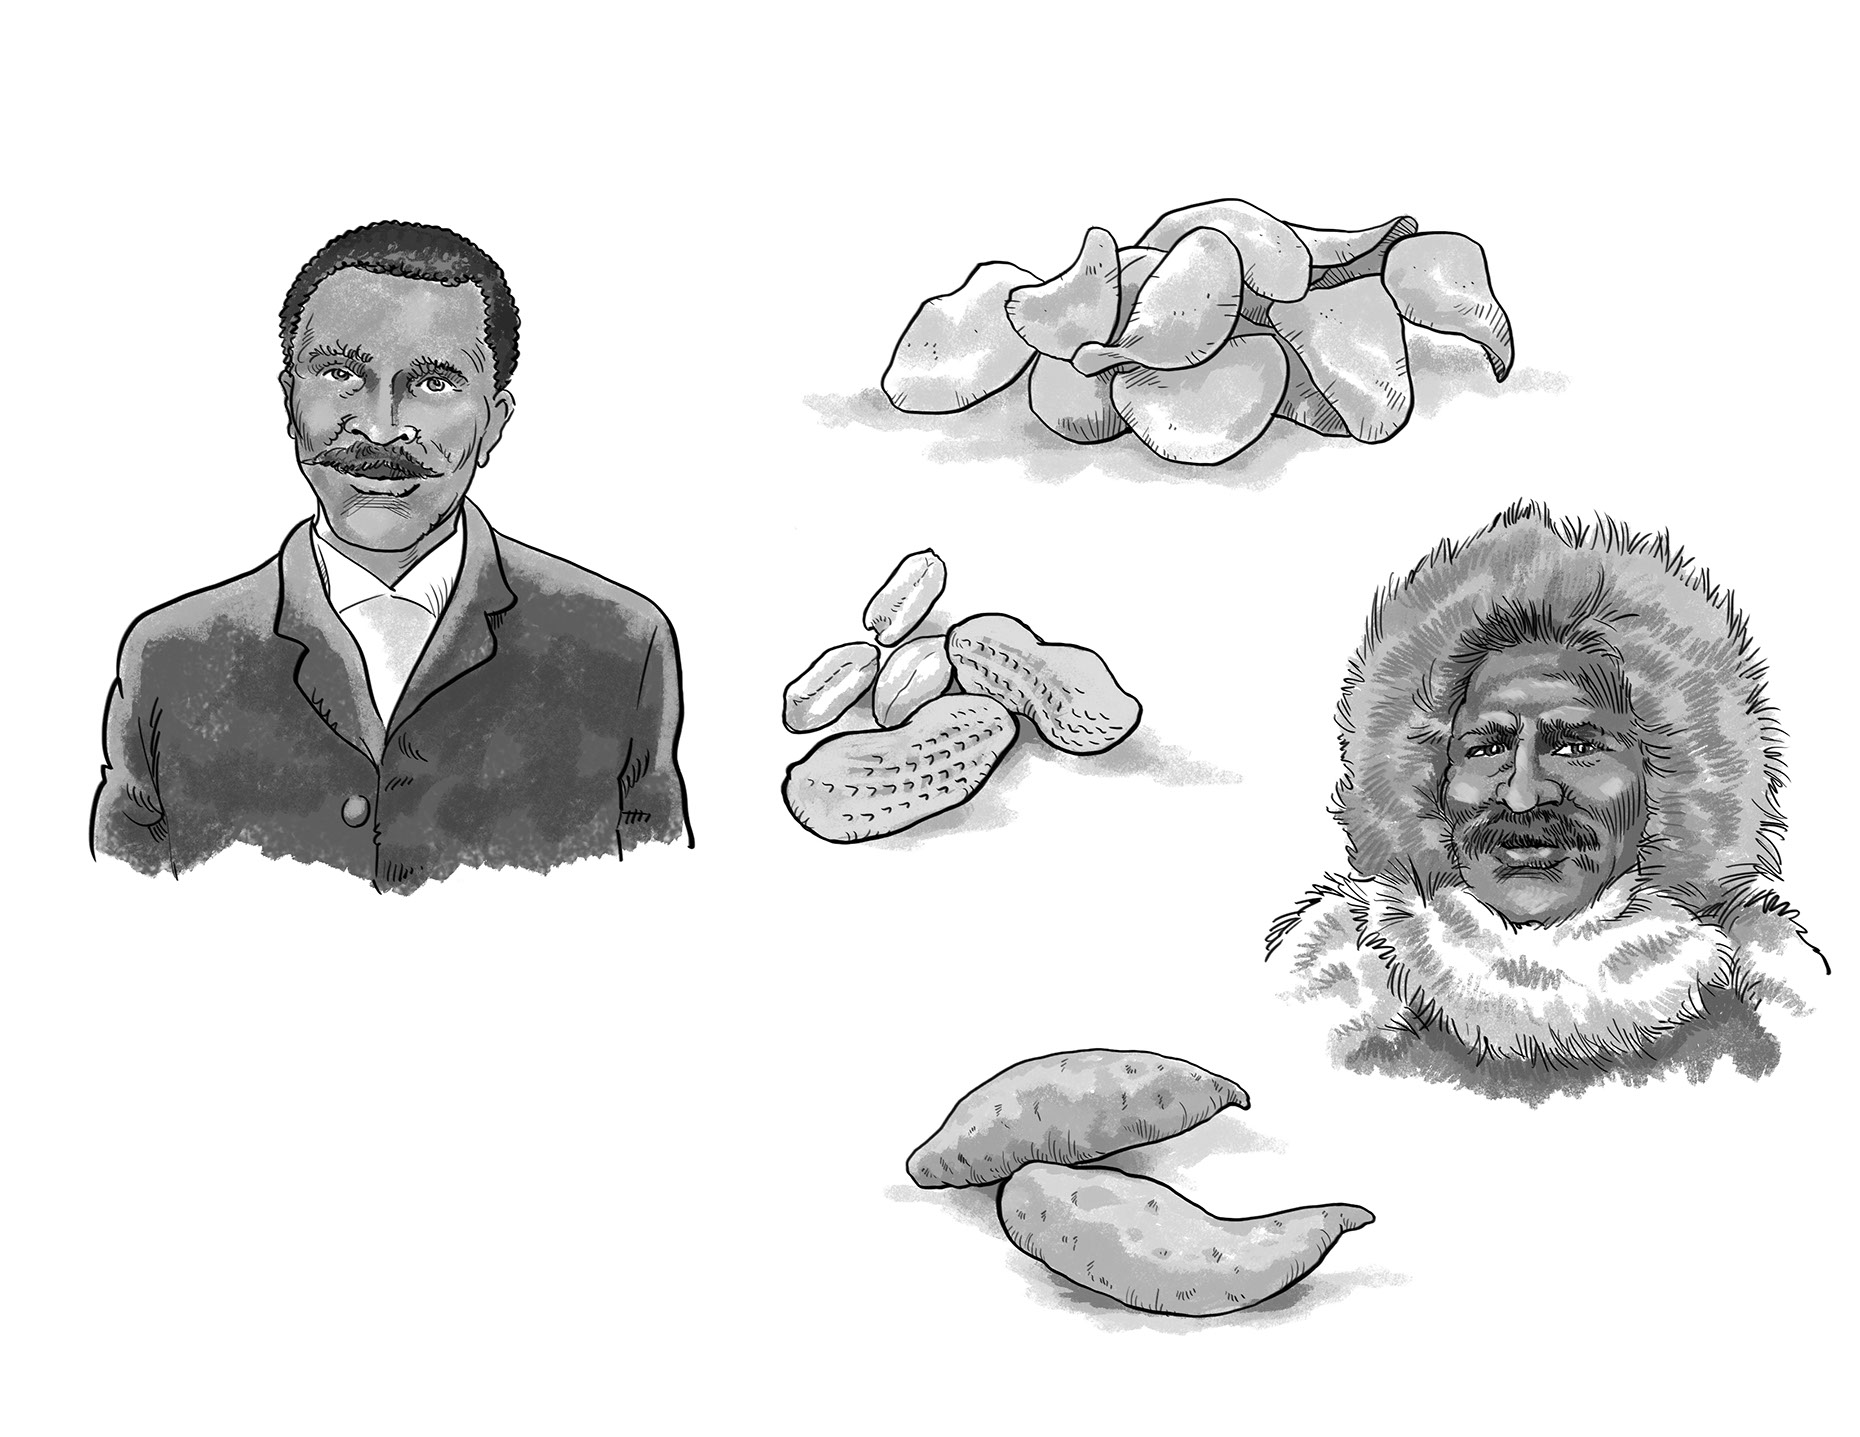 Illustration_People_George Washington Carver Black History-Bot-Roda